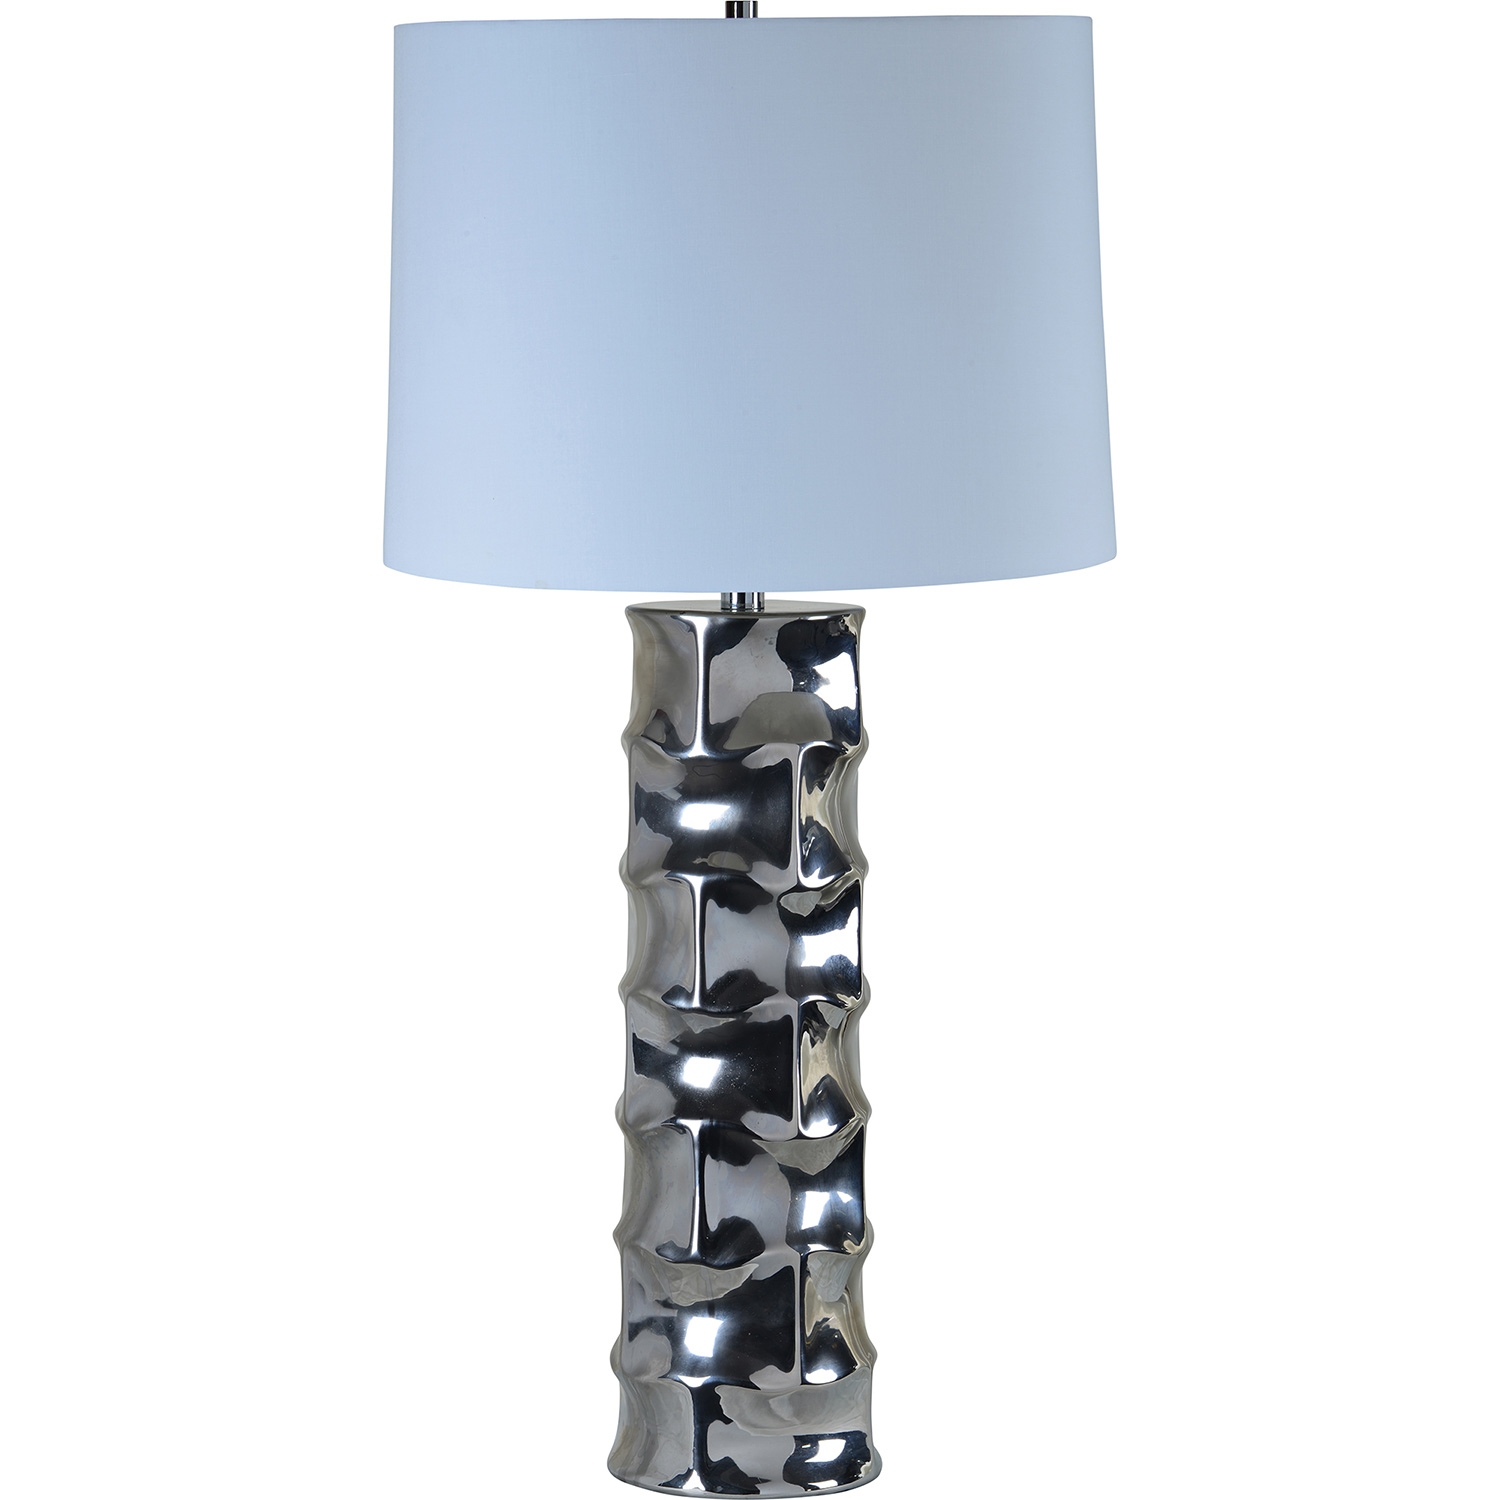 Ren-Wil Quenby Table Lamp - Silver Plated